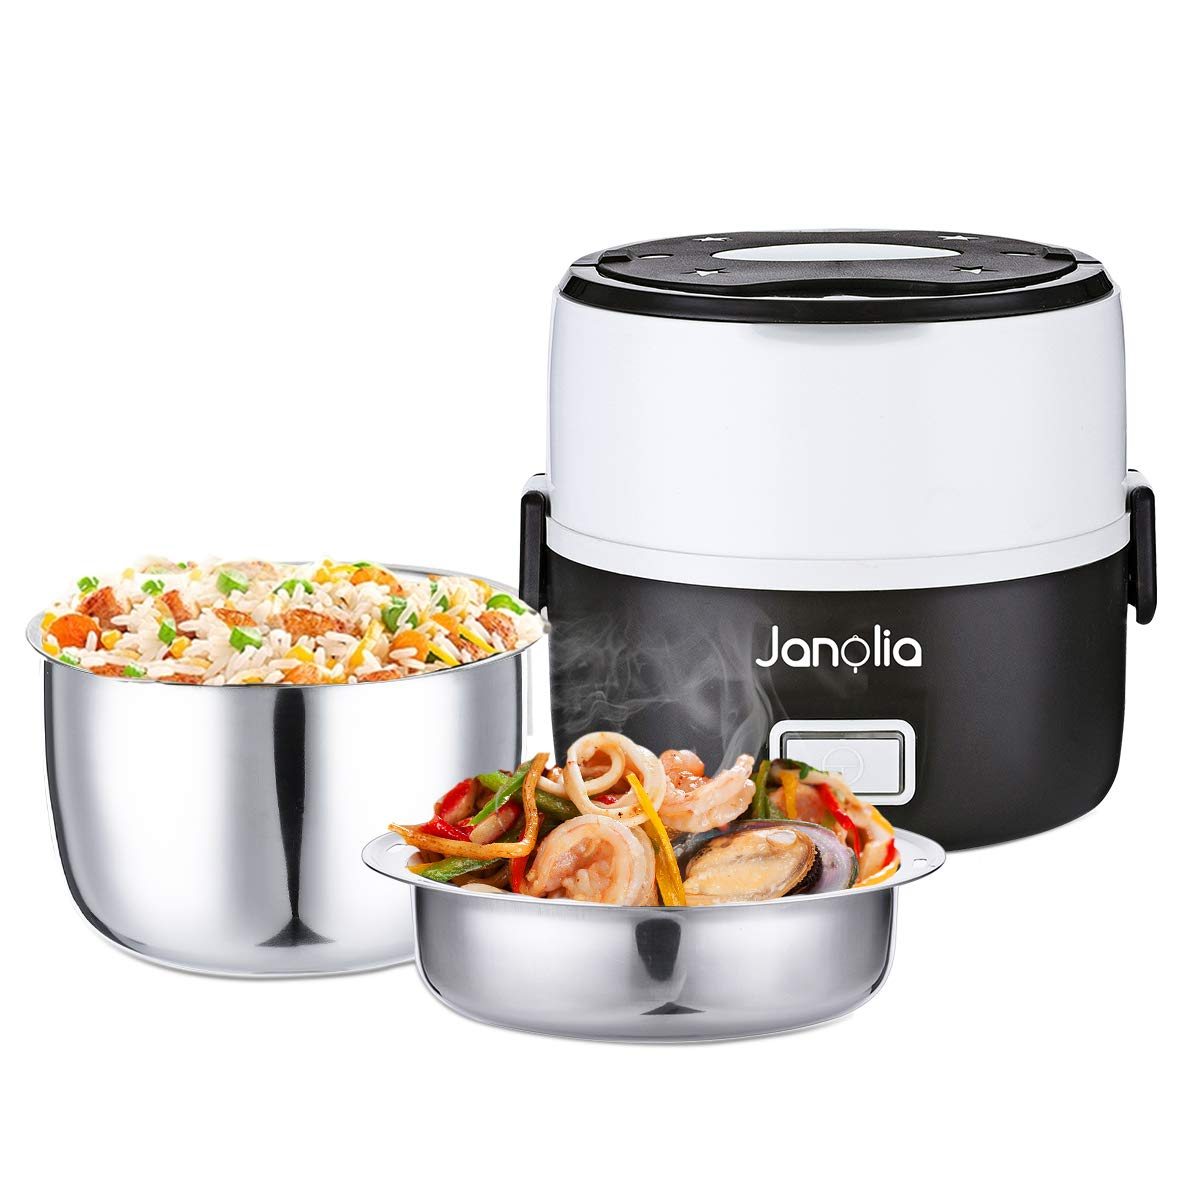 Janolia Electric Food Steamer, Portable Lunch Box Steamer with Stainless Steel Bowls, Measuring Cup by Janolia